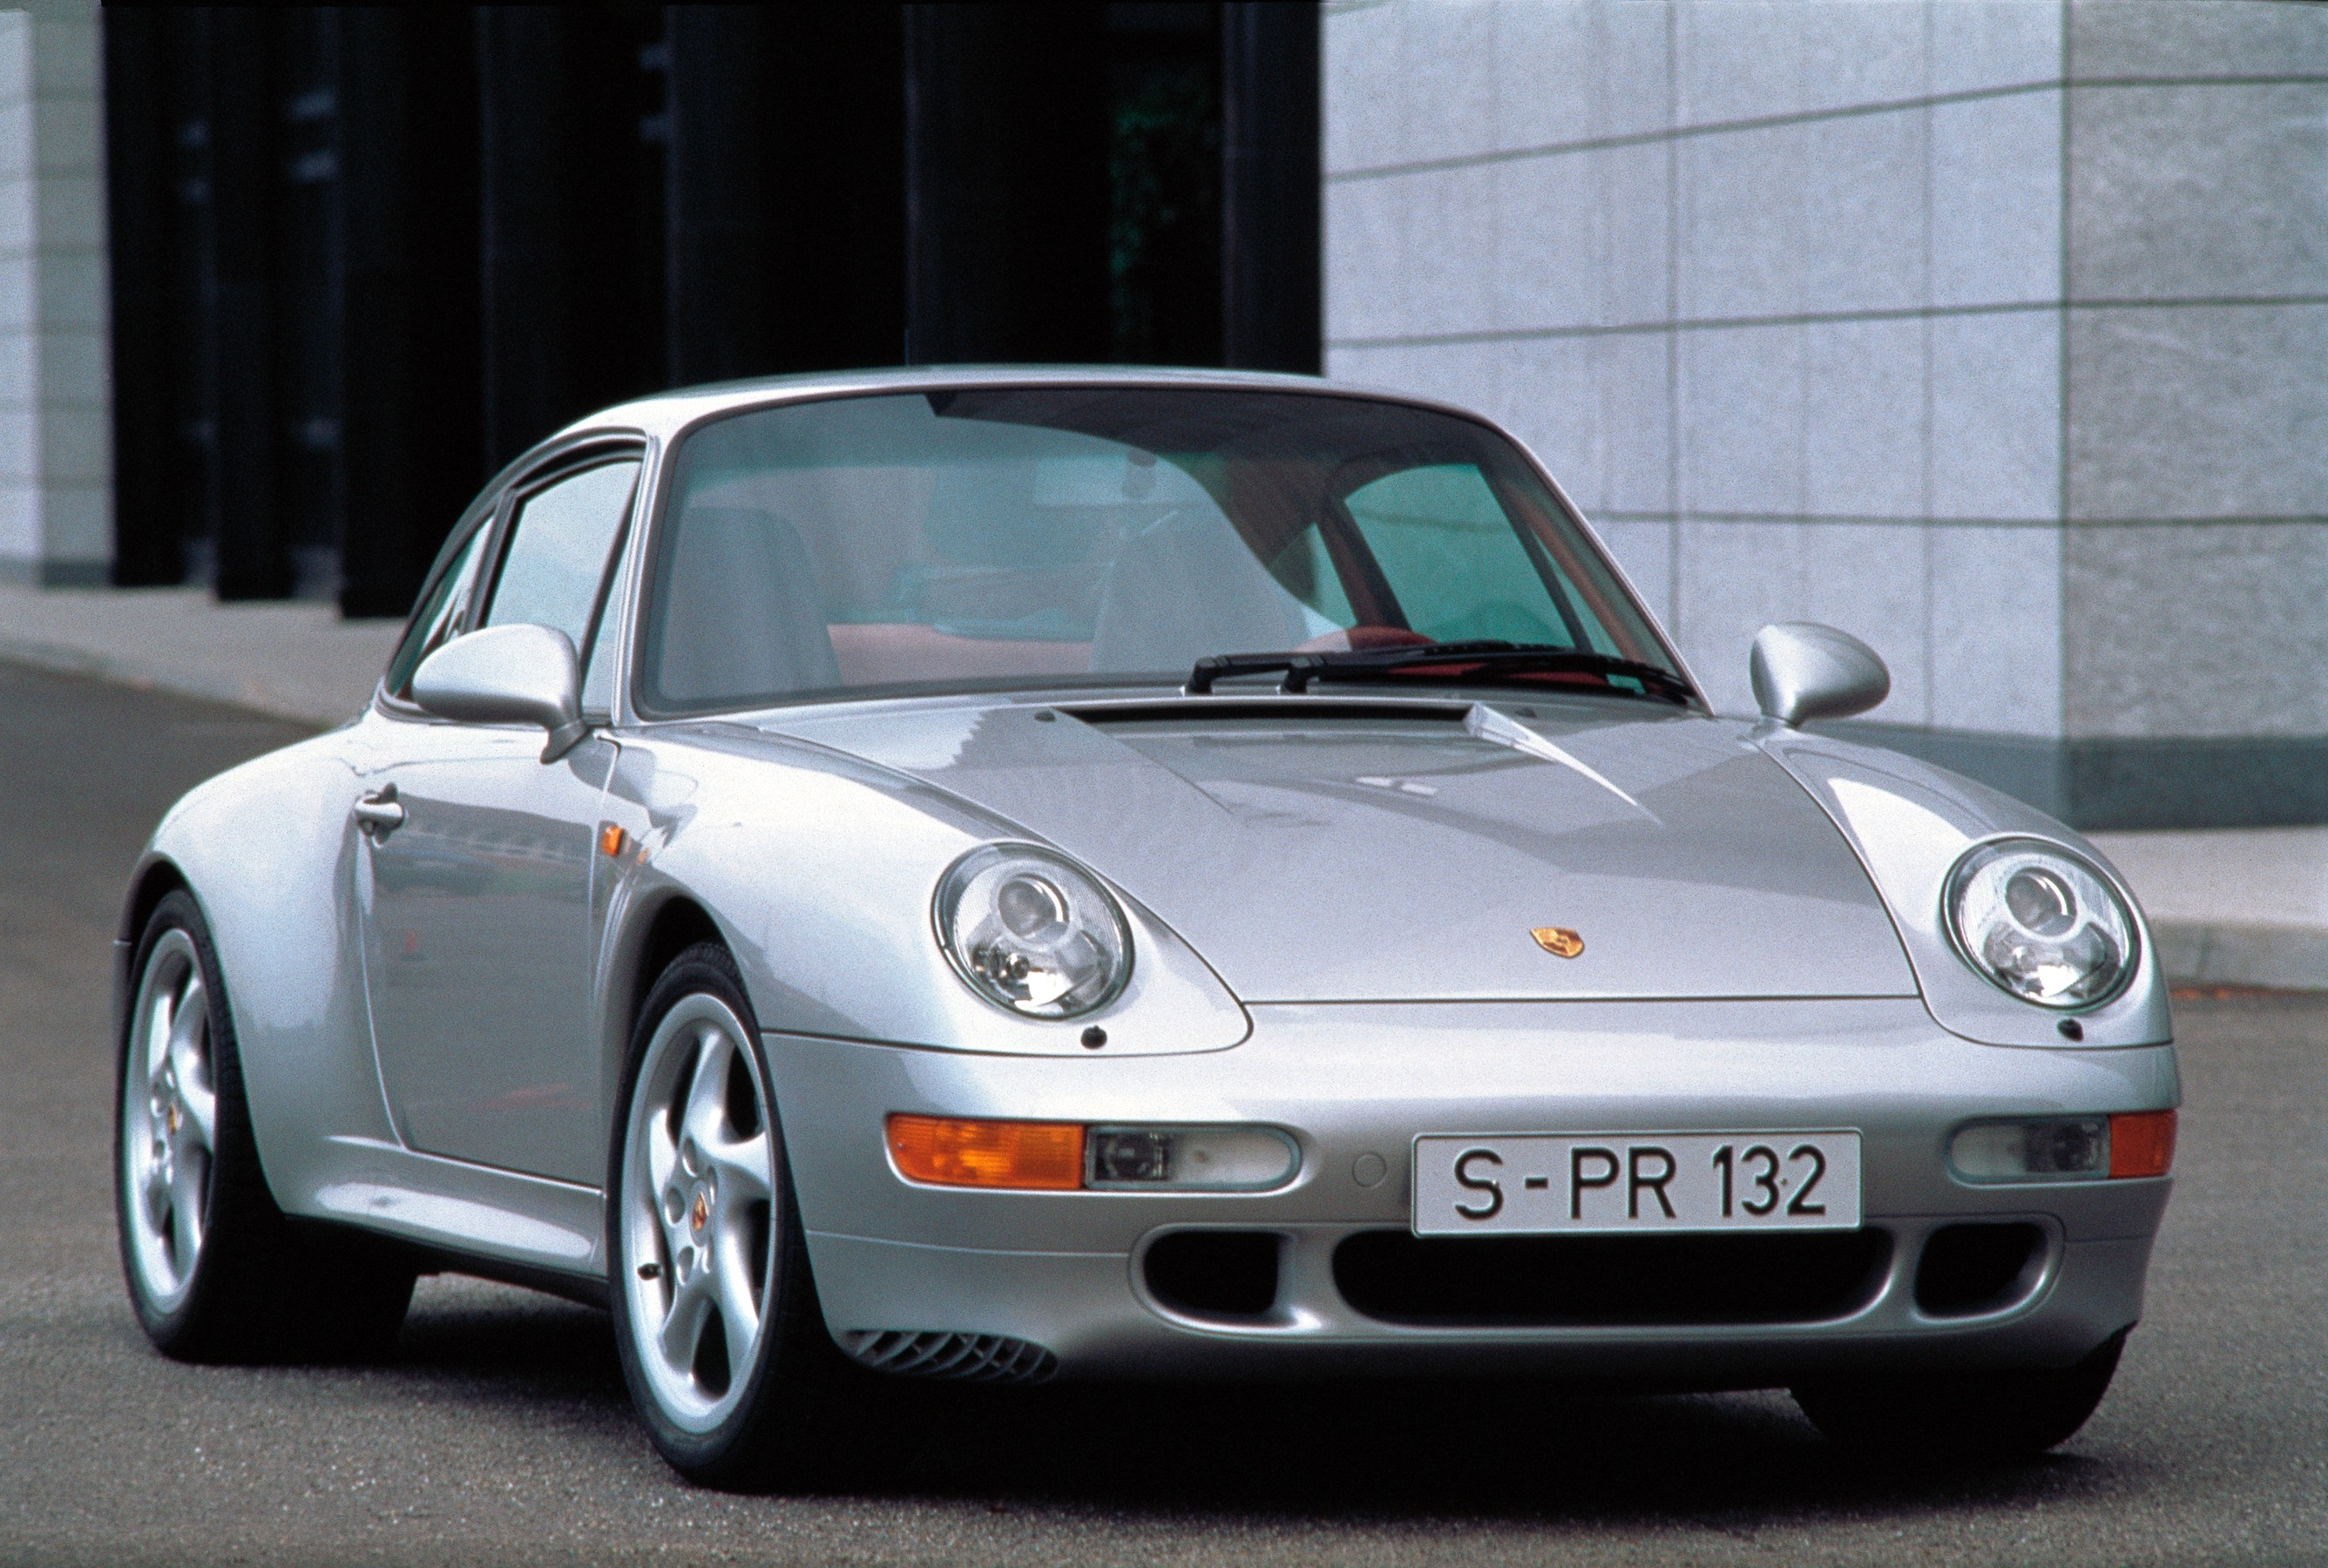 porsche 911 carrera s 993 specs 1995 1996 1997 autoevolution. Black Bedroom Furniture Sets. Home Design Ideas